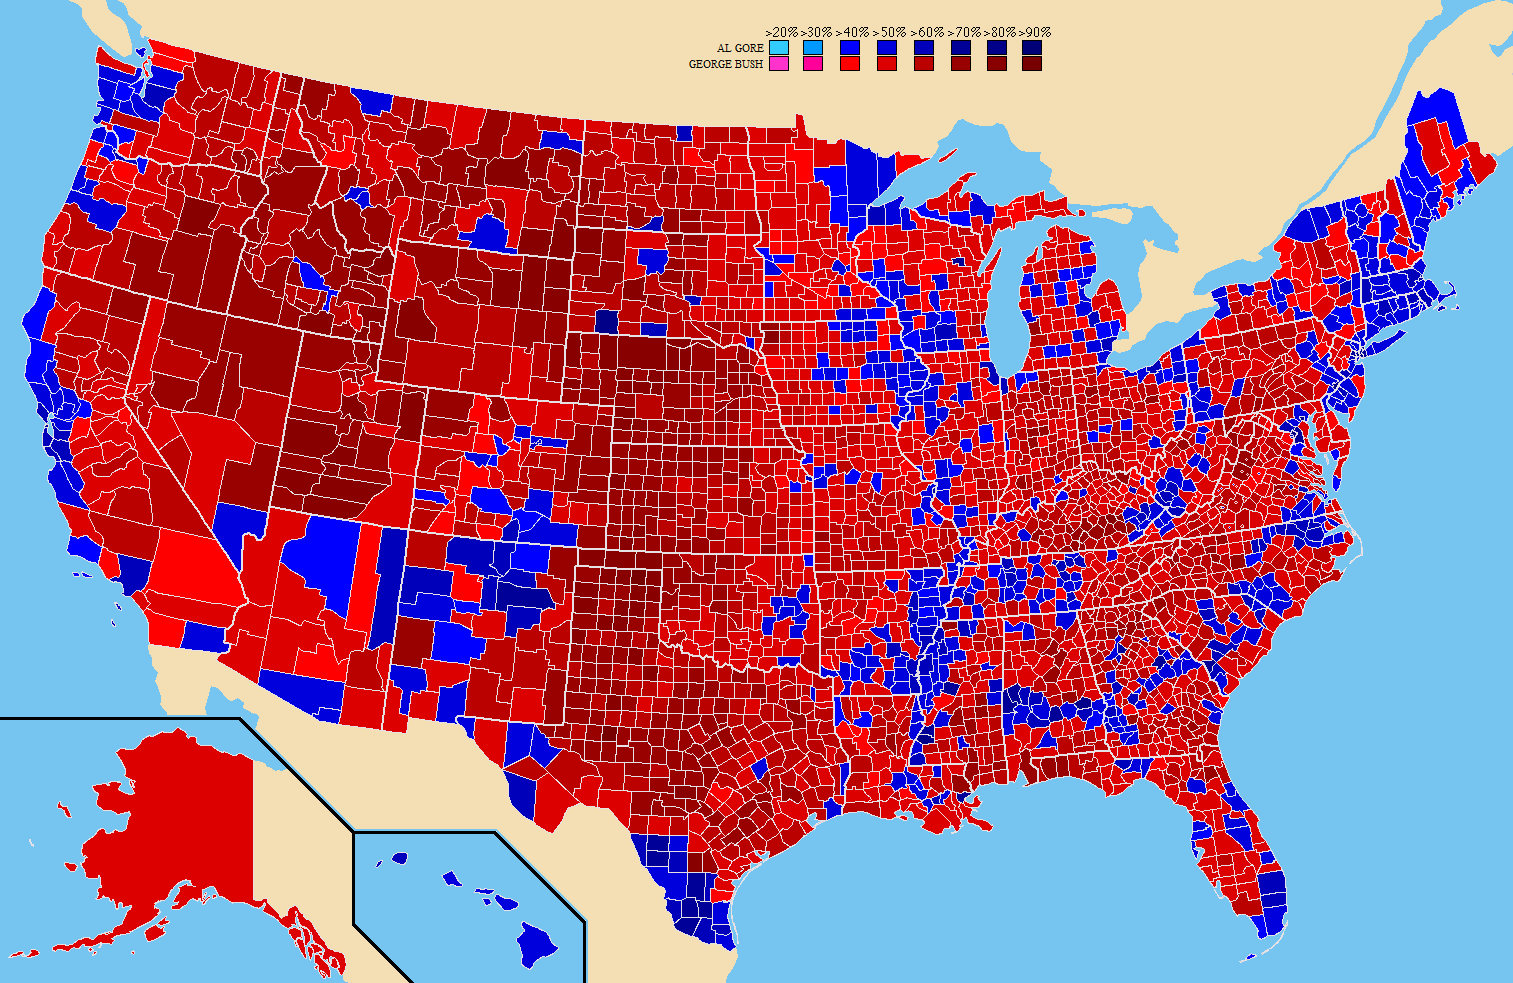 maps of the 2012 us presidential election results us state map georgia